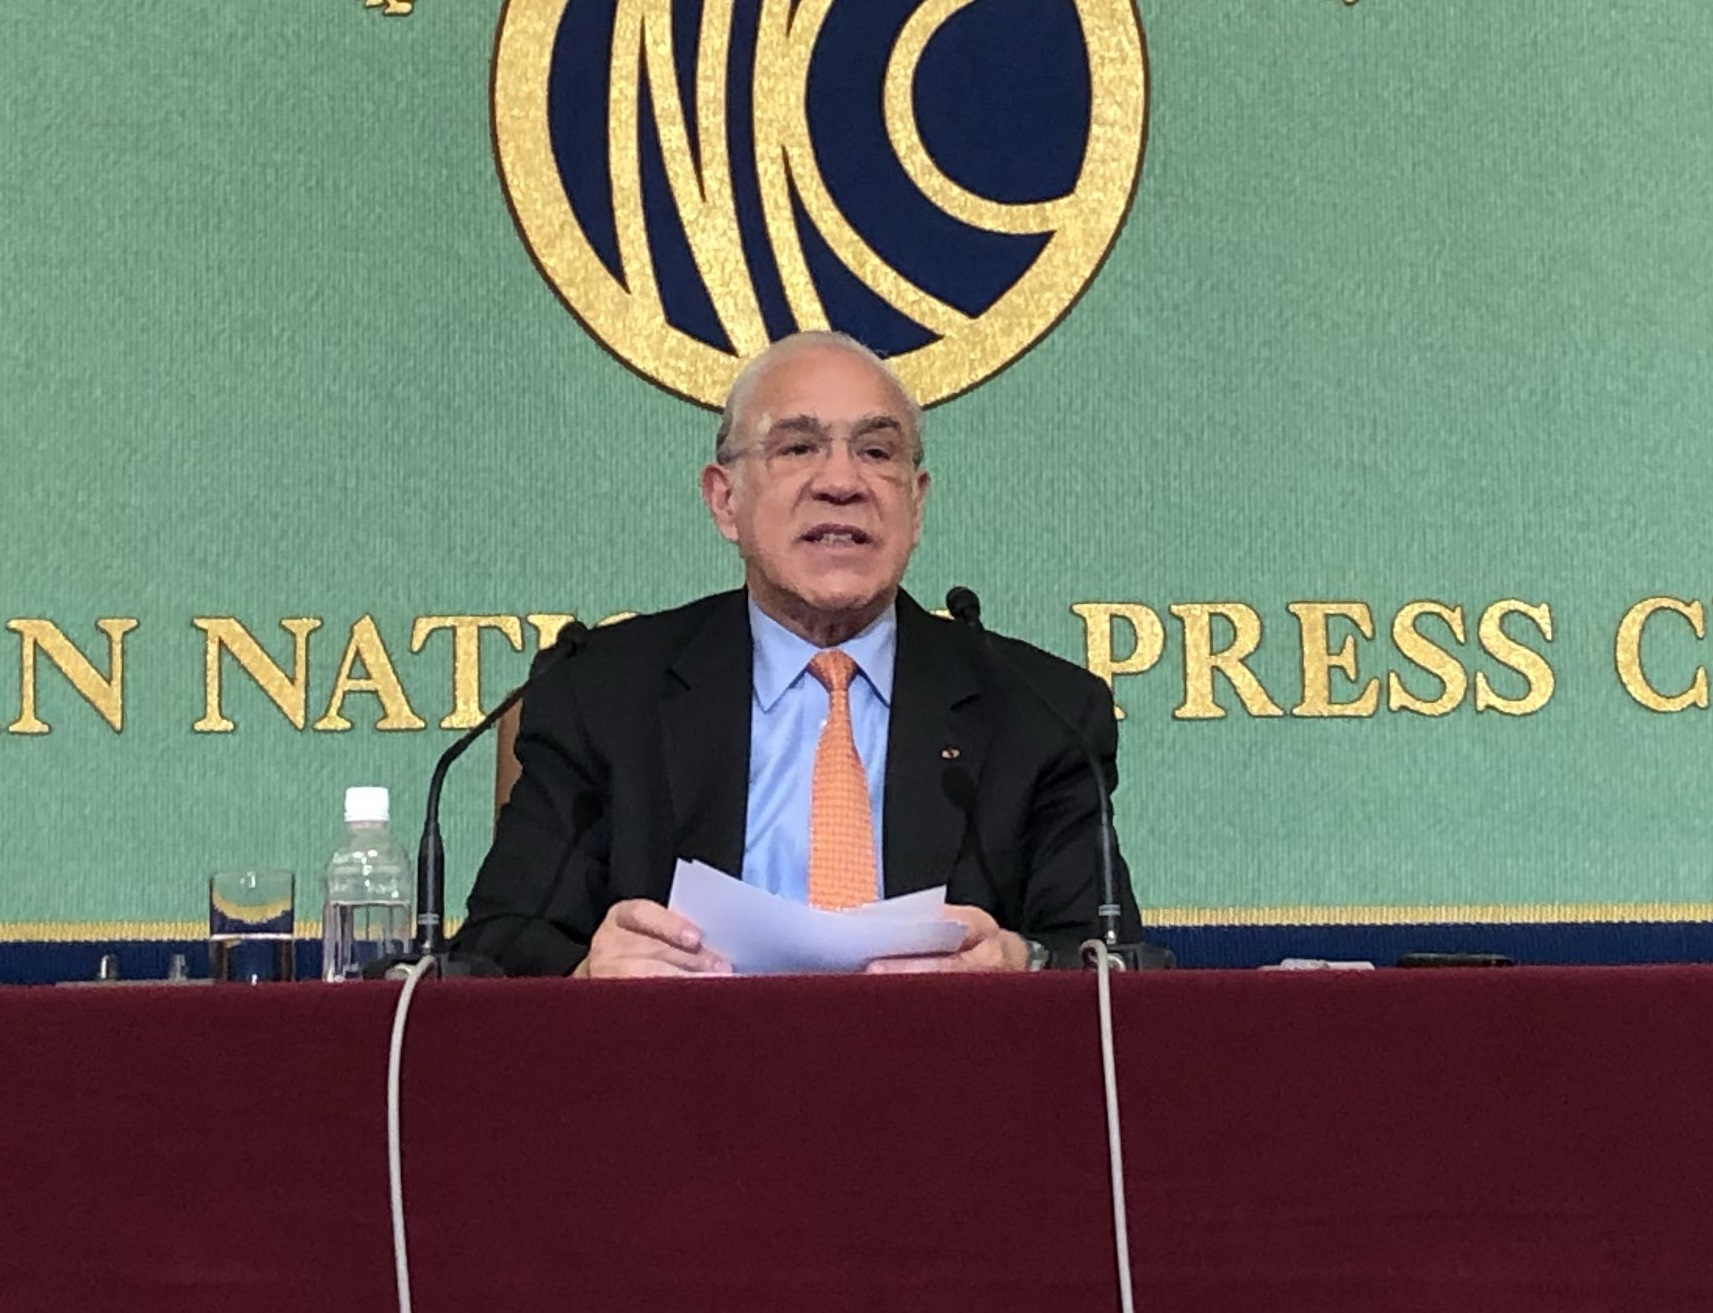 OECD Secretary-General Angel Gurria speaks at a news conference Monday in Tokyo about the organization's biennial Economic Surveys report on Japan. | SATOSHI SUGIYAMA